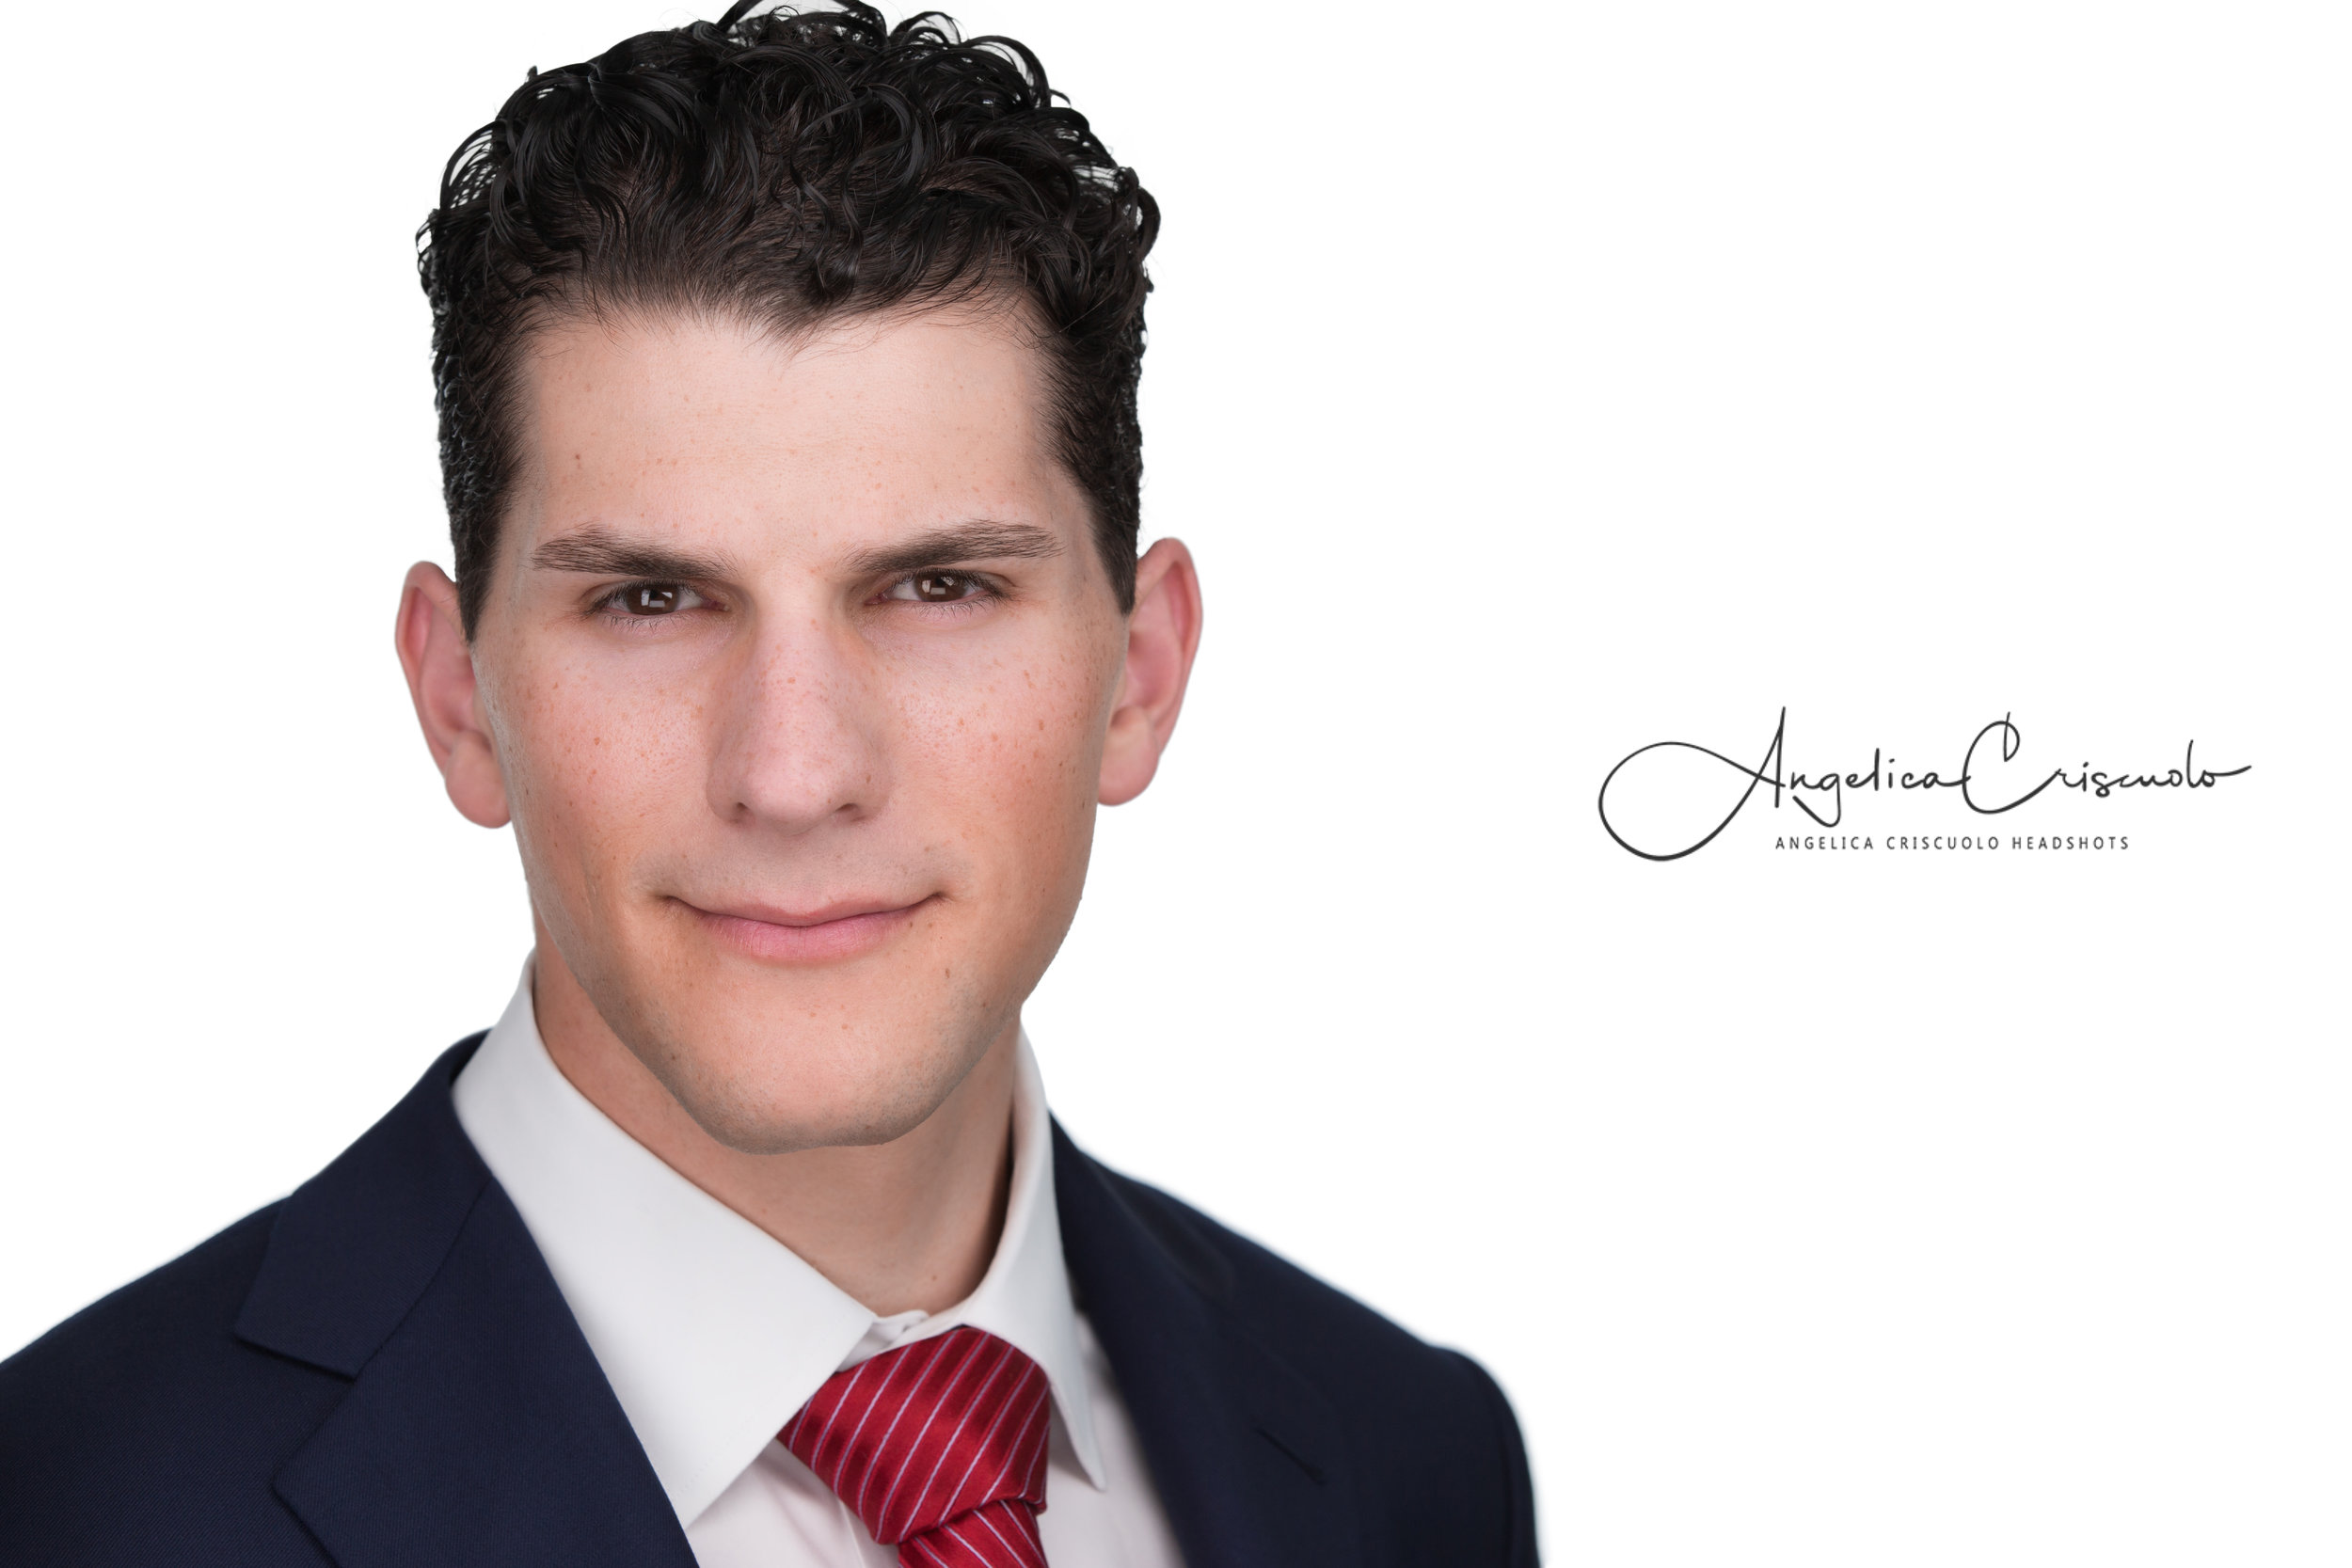 NYC Headshot photographer